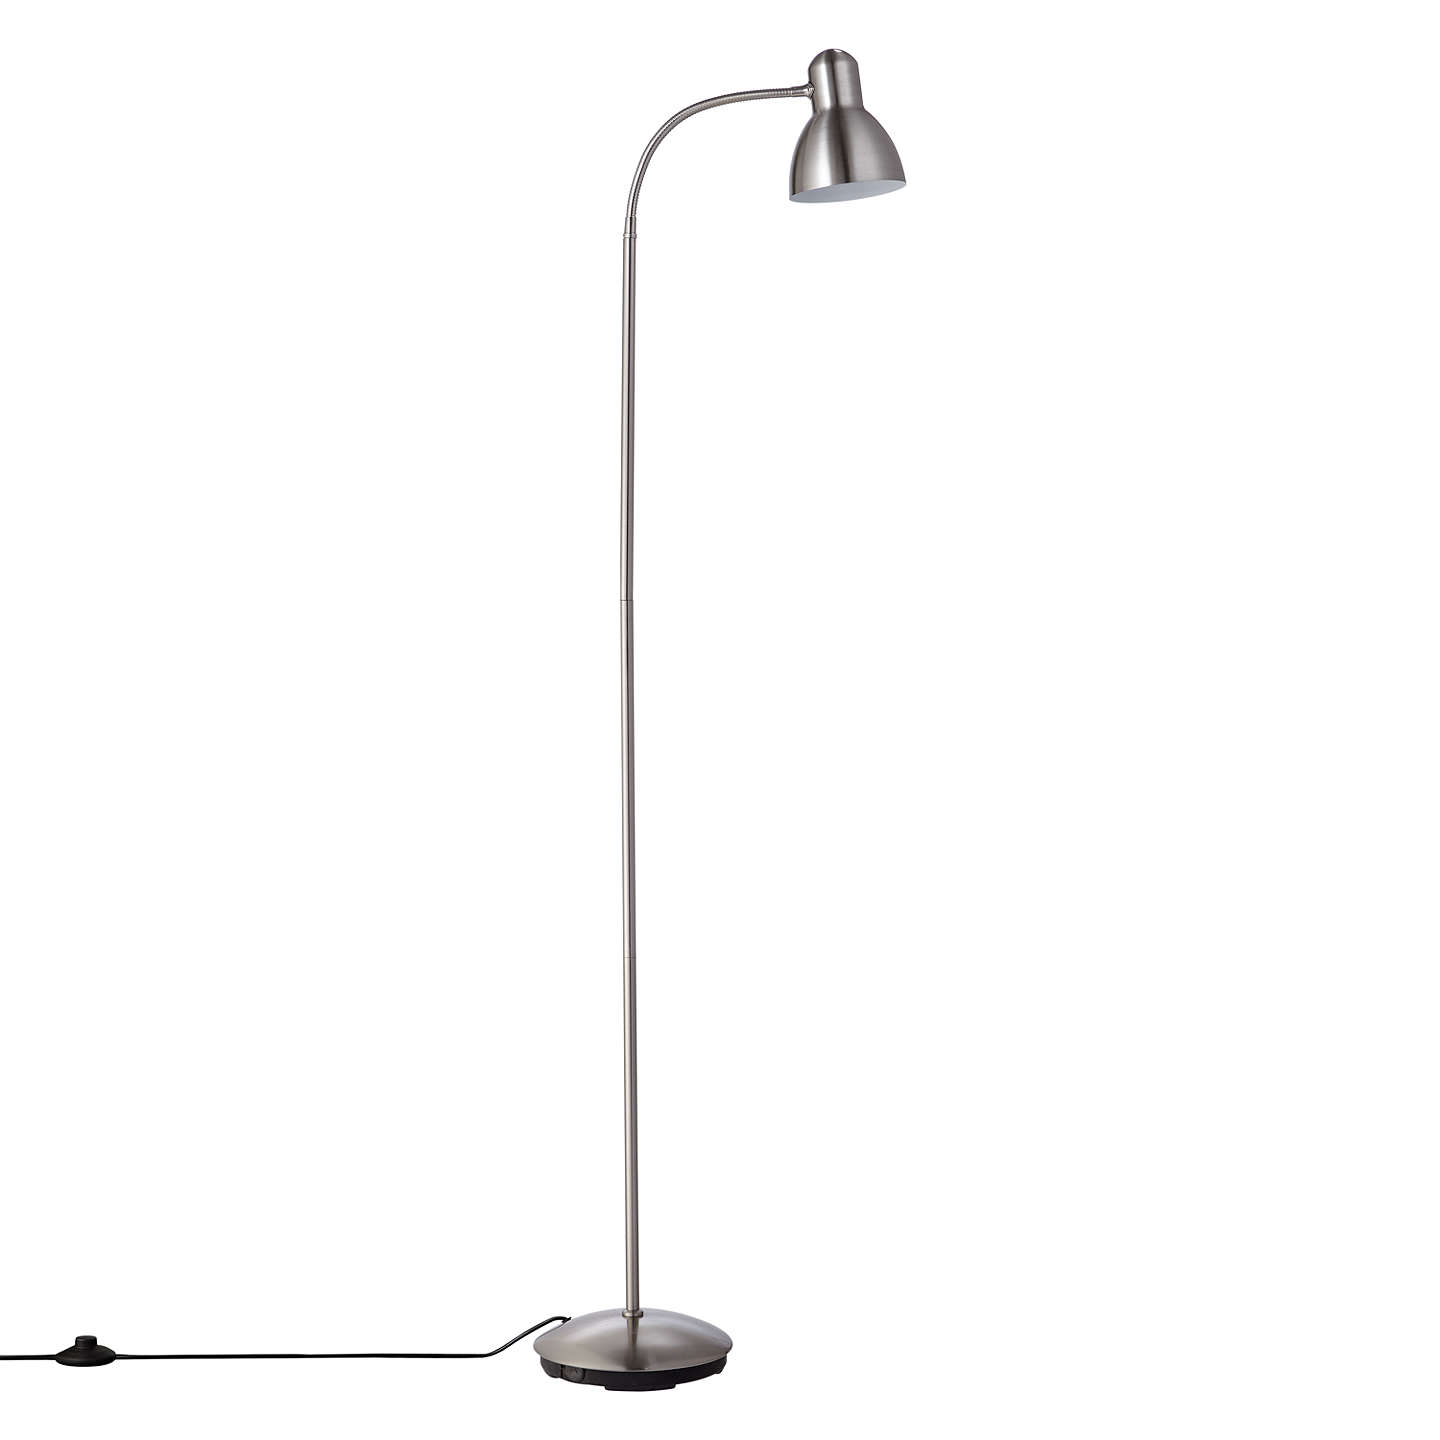 John lewis mykki led floor lamp at john lewis buyjohn lewis mykki led floor lamp satin nickel online at johnlewis mozeypictures Gallery